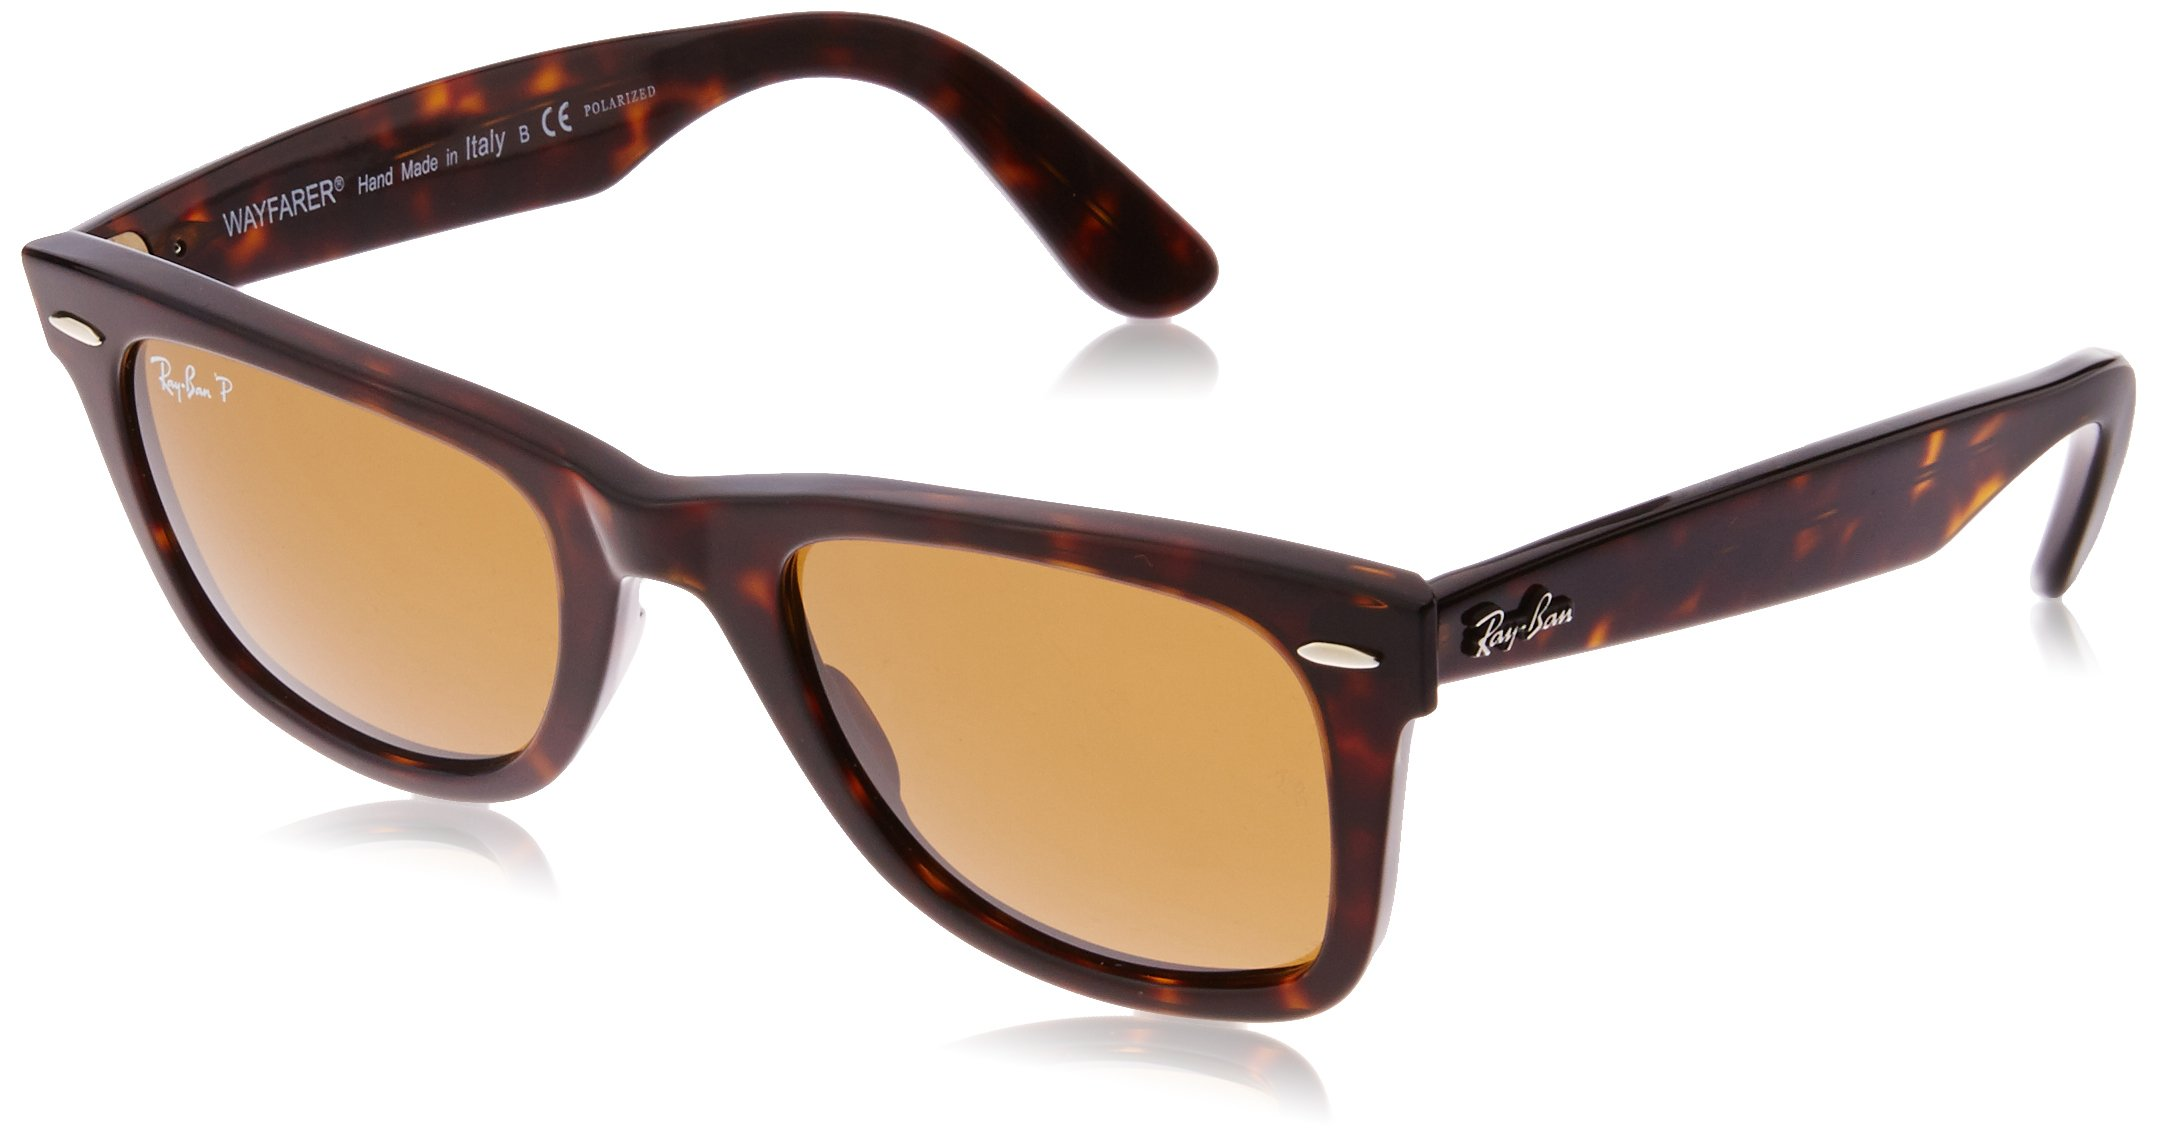 Ray-Ban RB2140 Wayfarer Sunglasses, Striped Tortoise/Polarized Crystal Brown, 50 mm by RAY-BAN